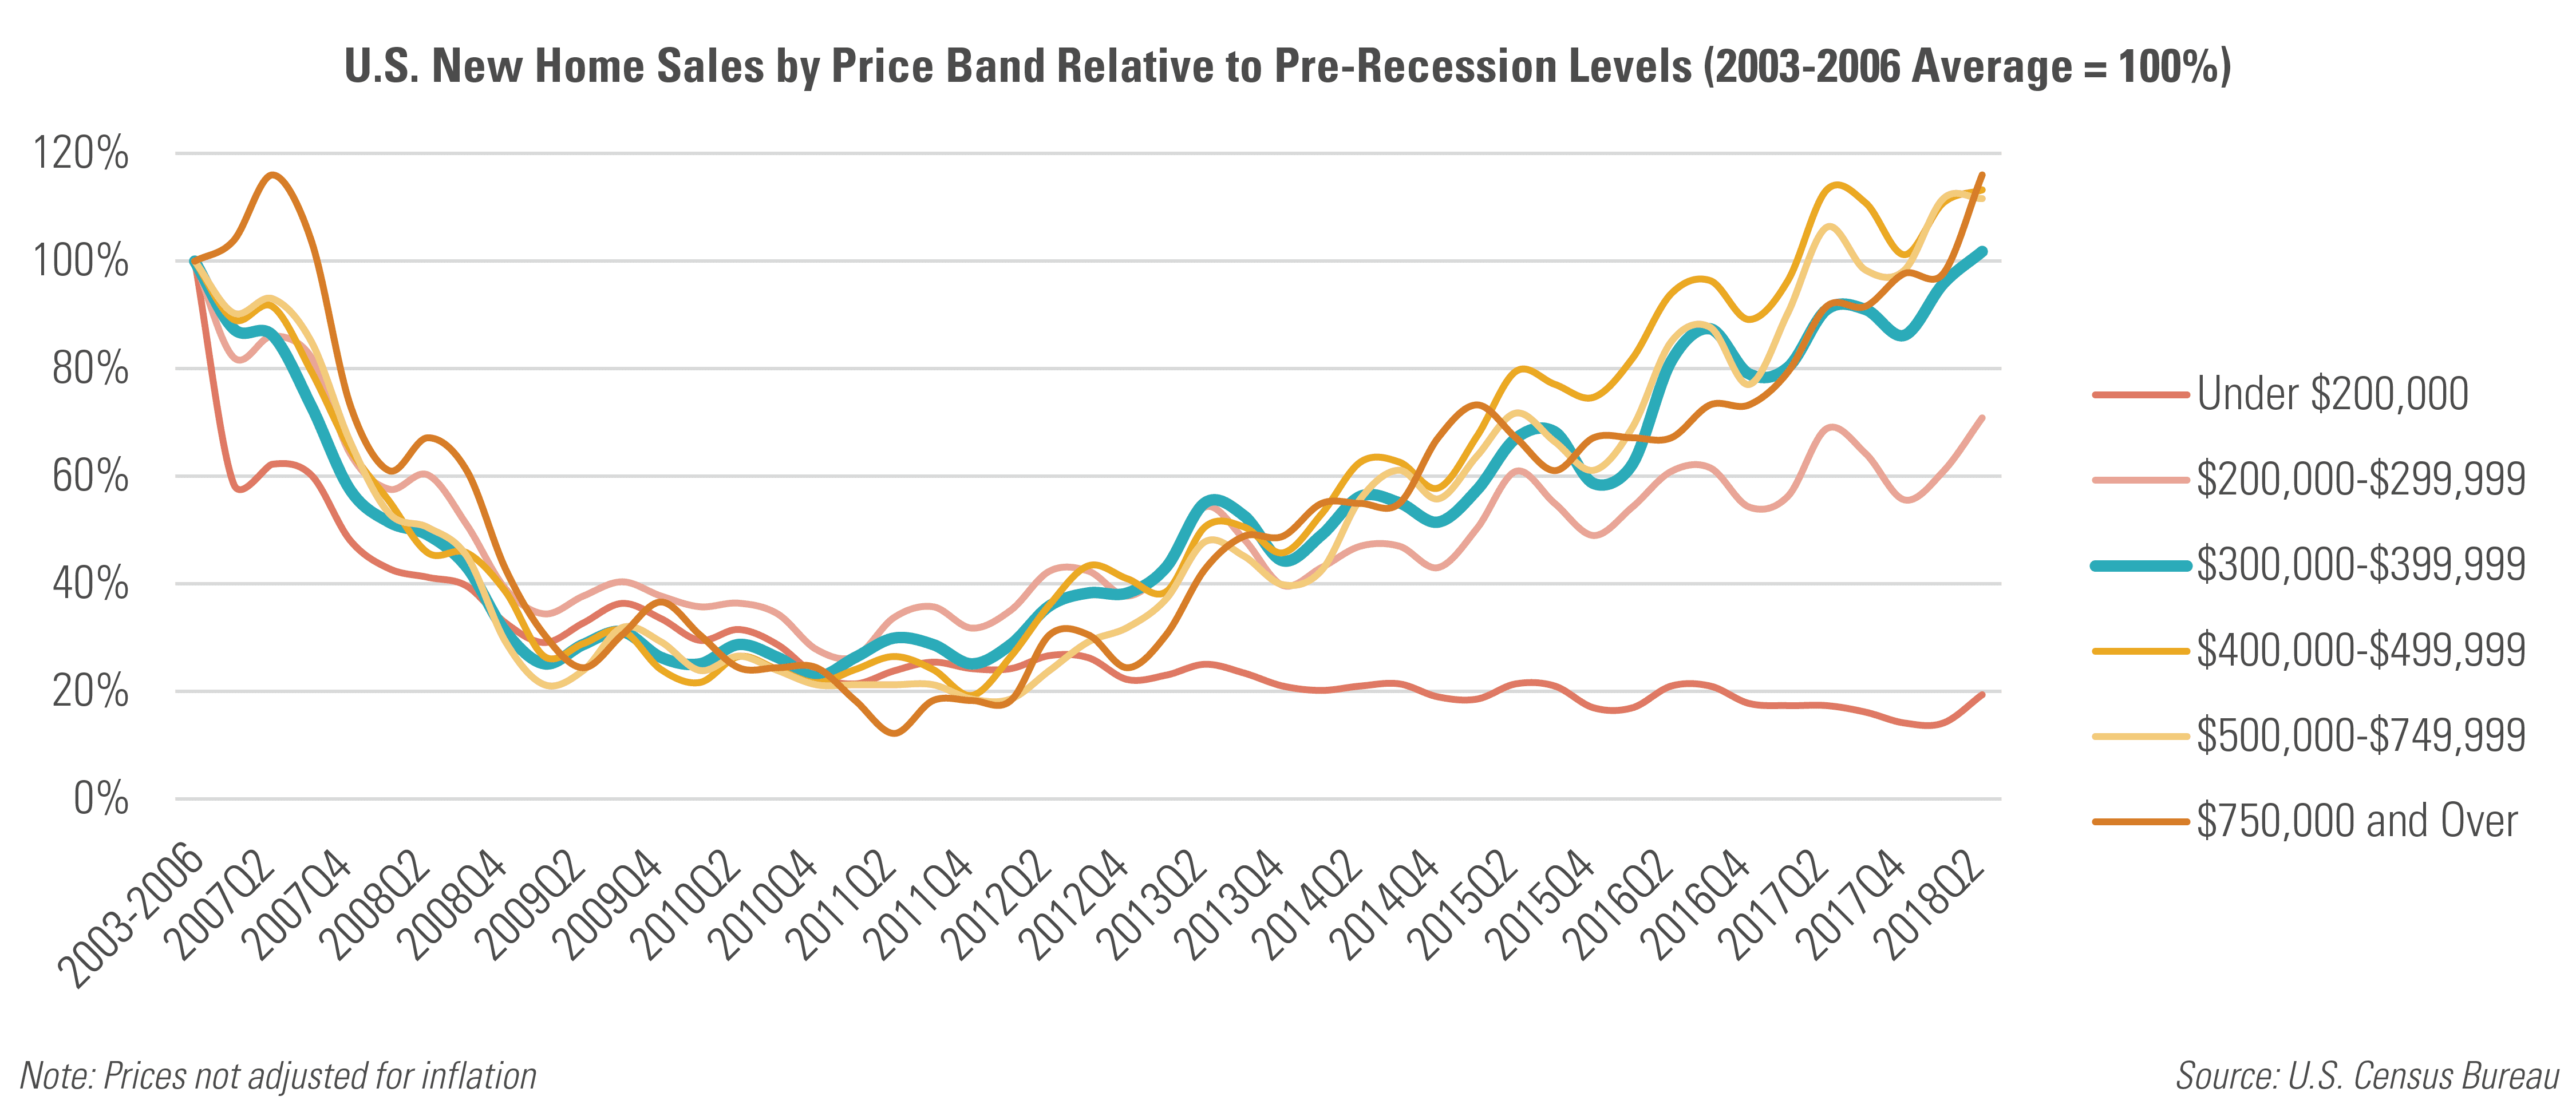 U.S. New Home Sales by Price Band Relative Pre-Recession Levels (2003-2006 Average = 100%)